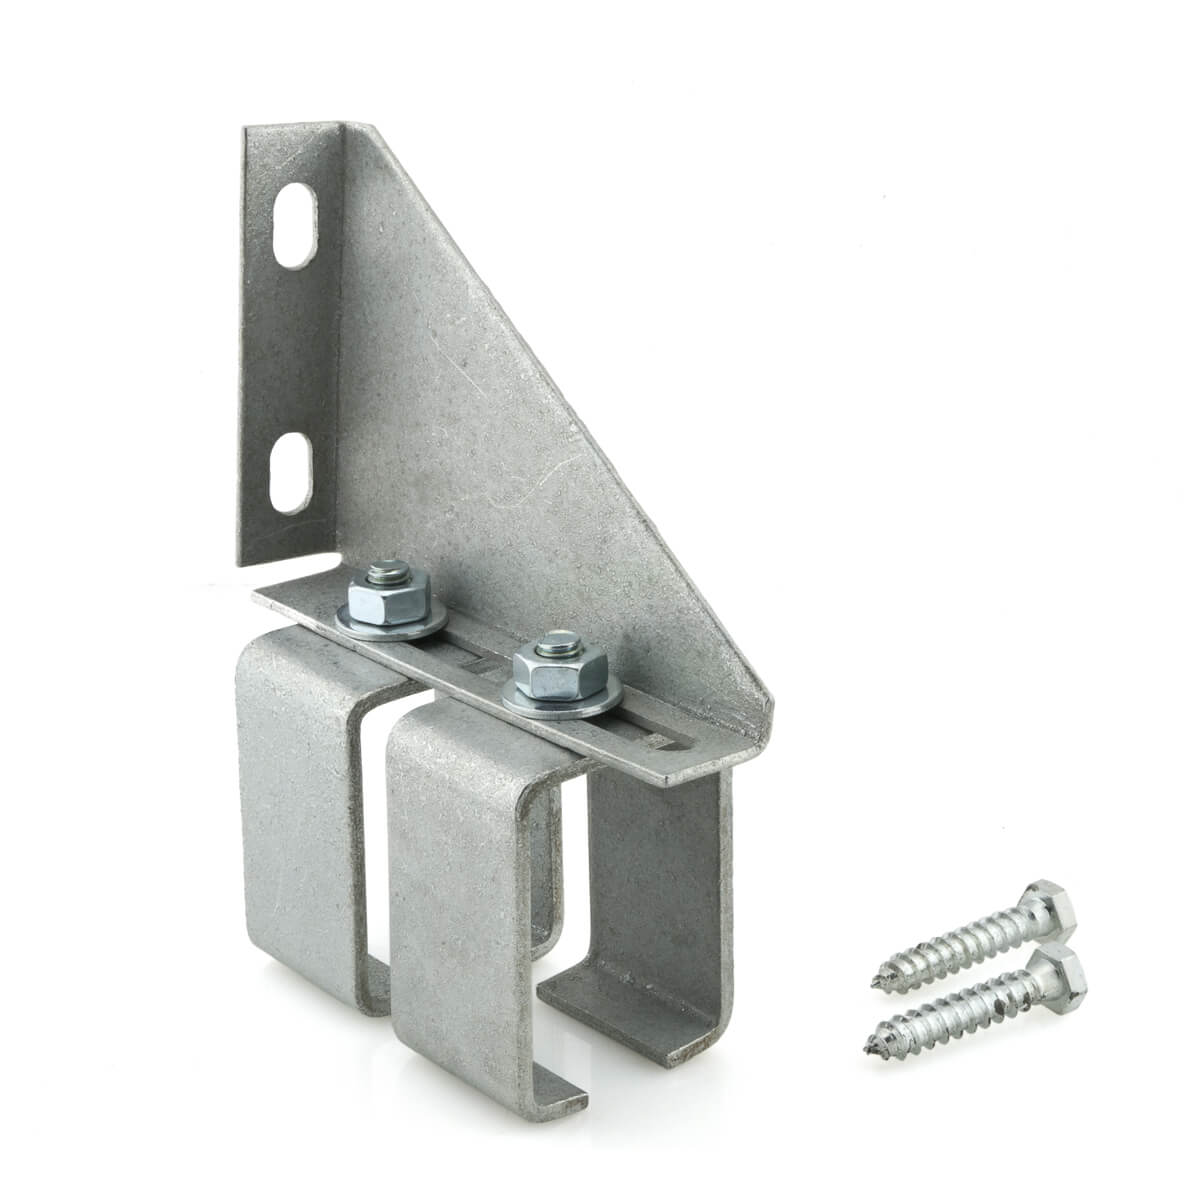 "Double Adjustable Box Rail Bracket - Wall Mount  - 1-3/4"" x 7-3/4"" x 4-7/8"""